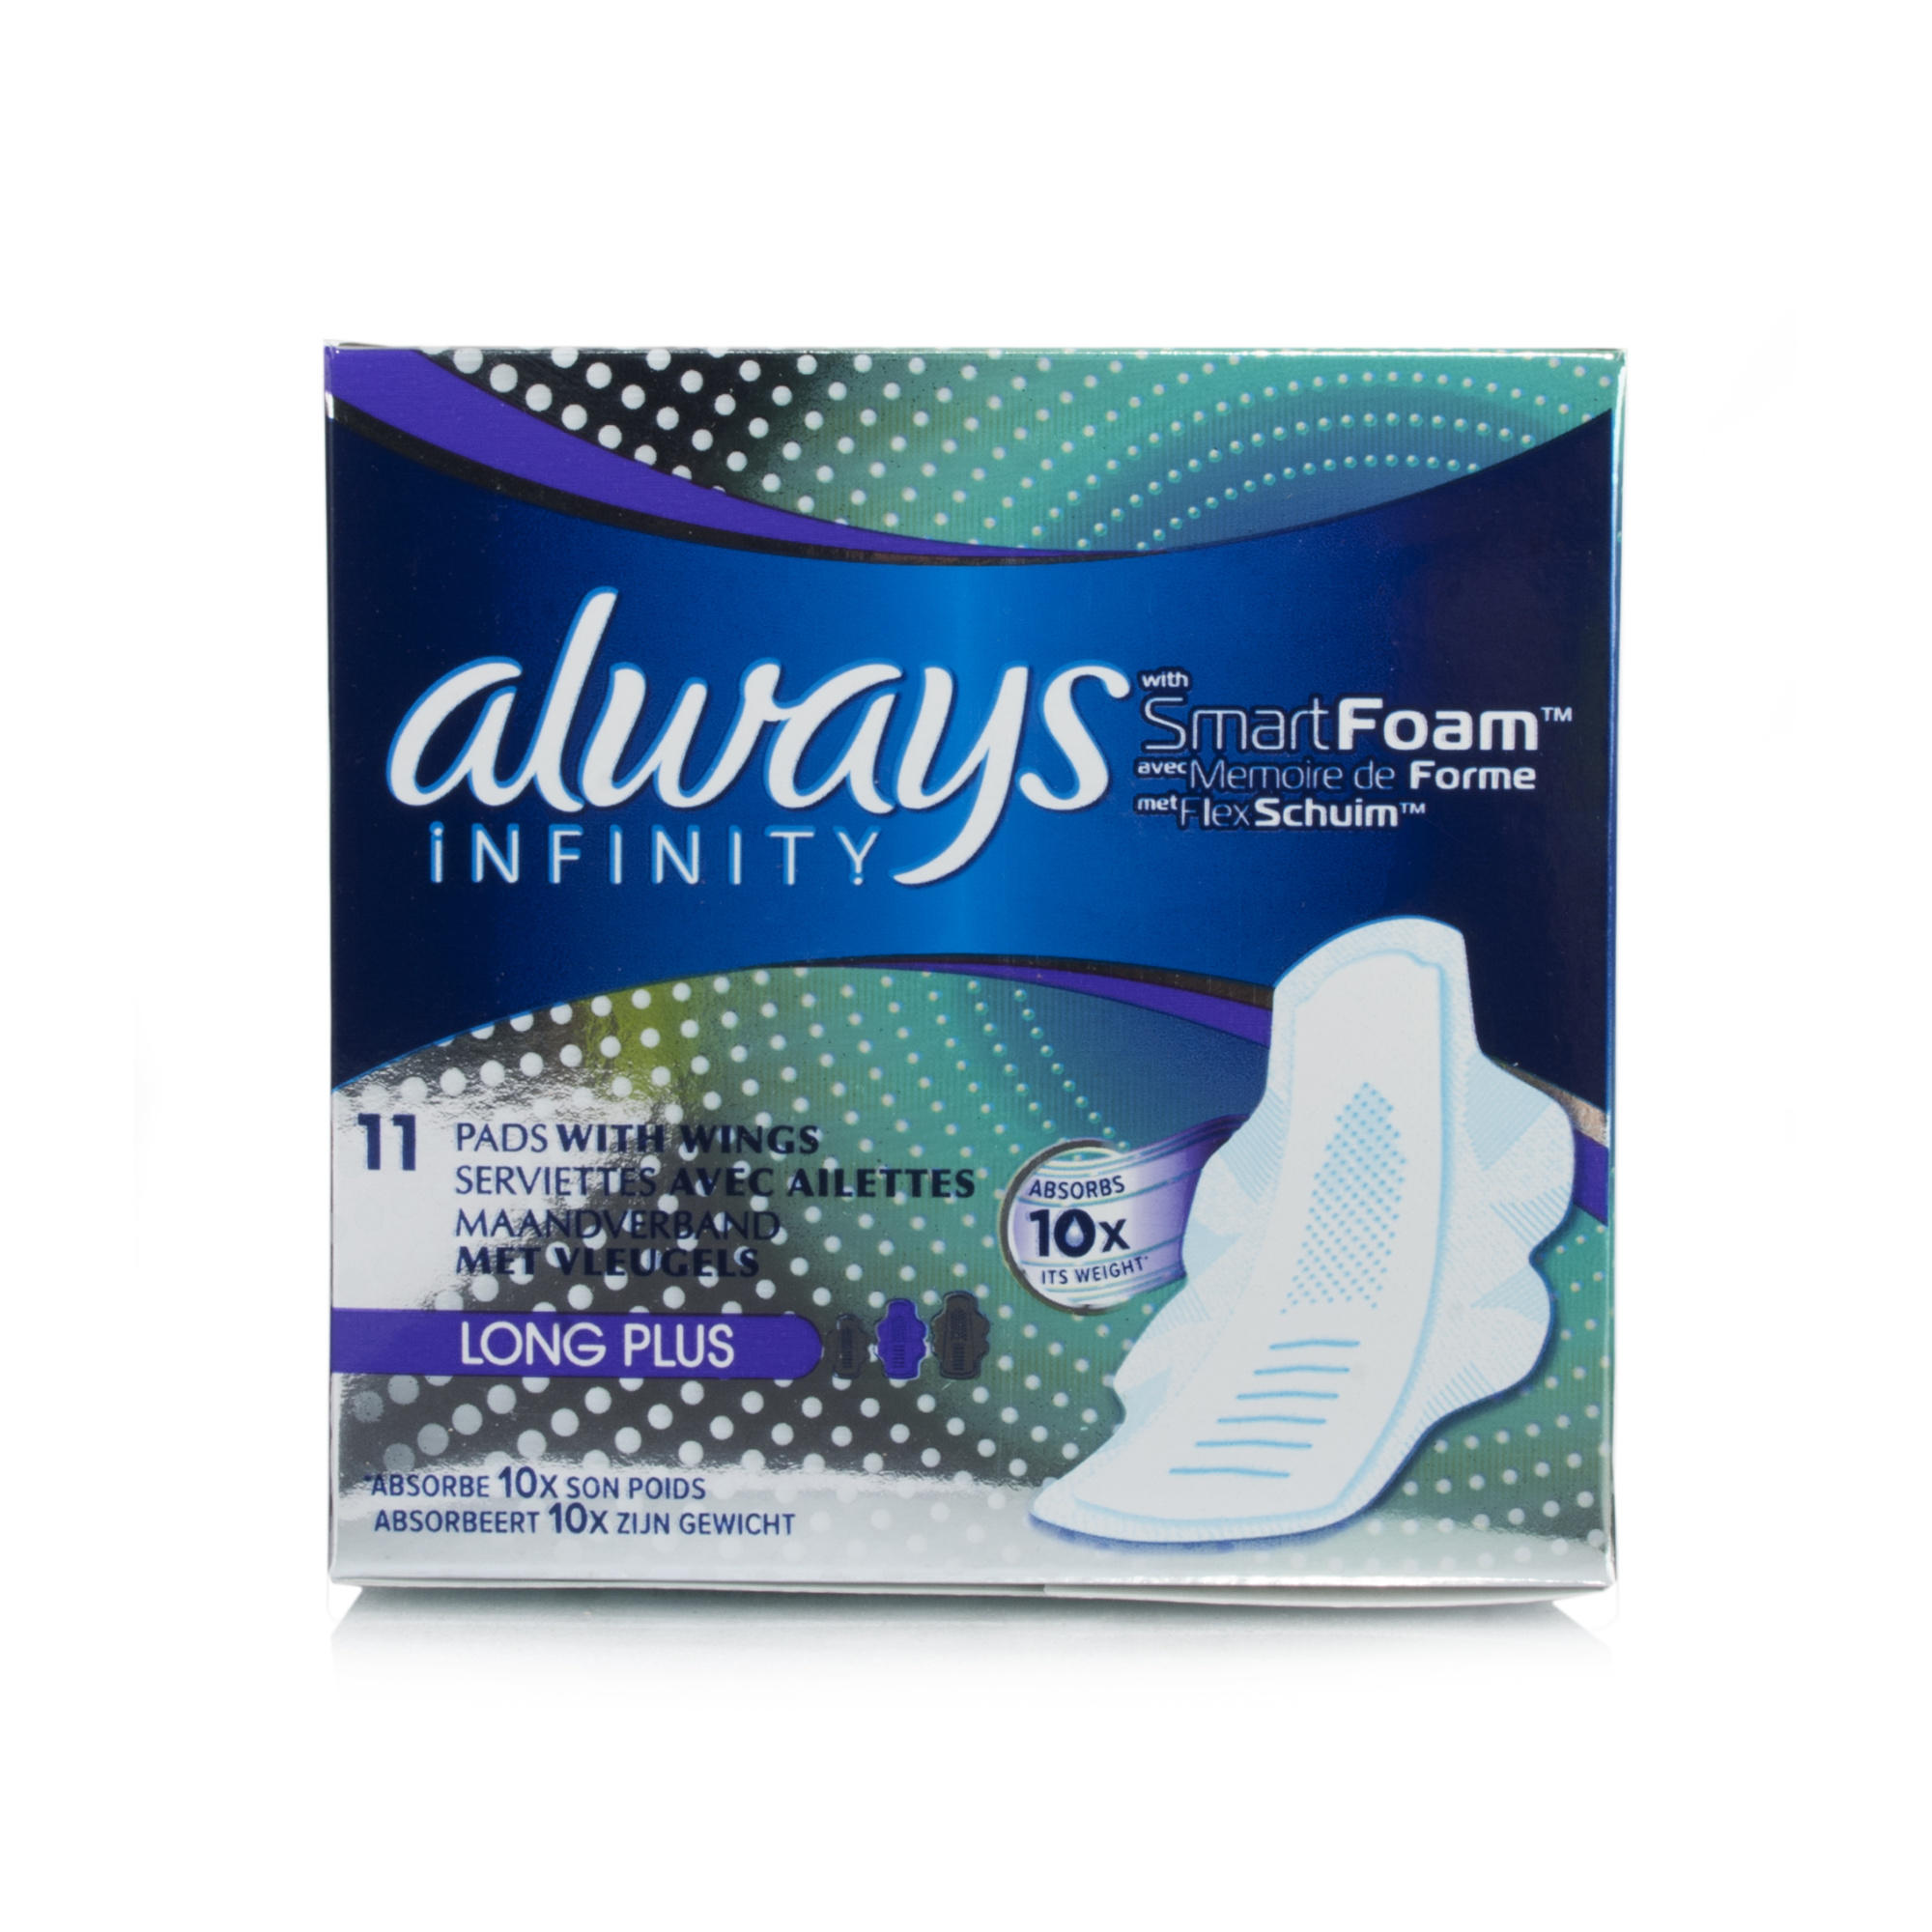 always infinity smart foam 11 pads with wings absorbs 10x its weight